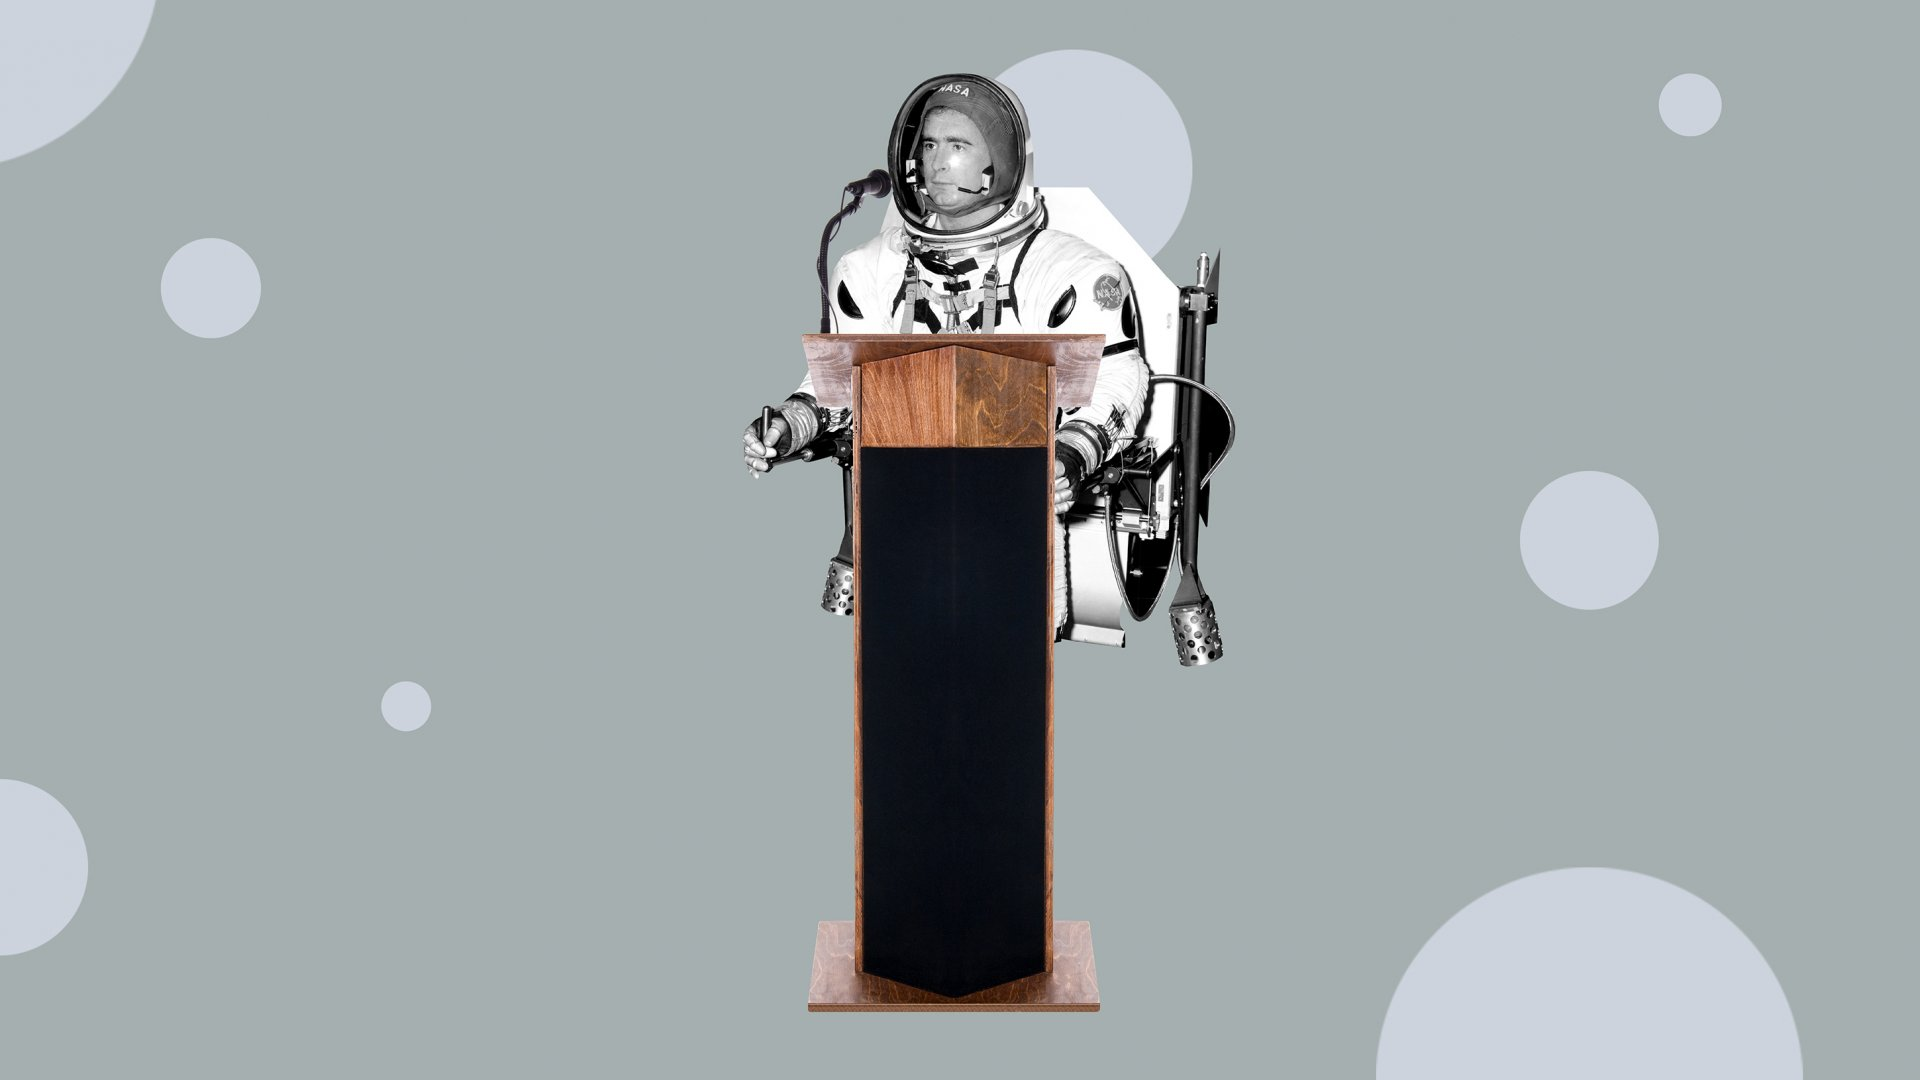 This Astronaut Training Strategy Can Help You Manage Your Fear of Public Speaking